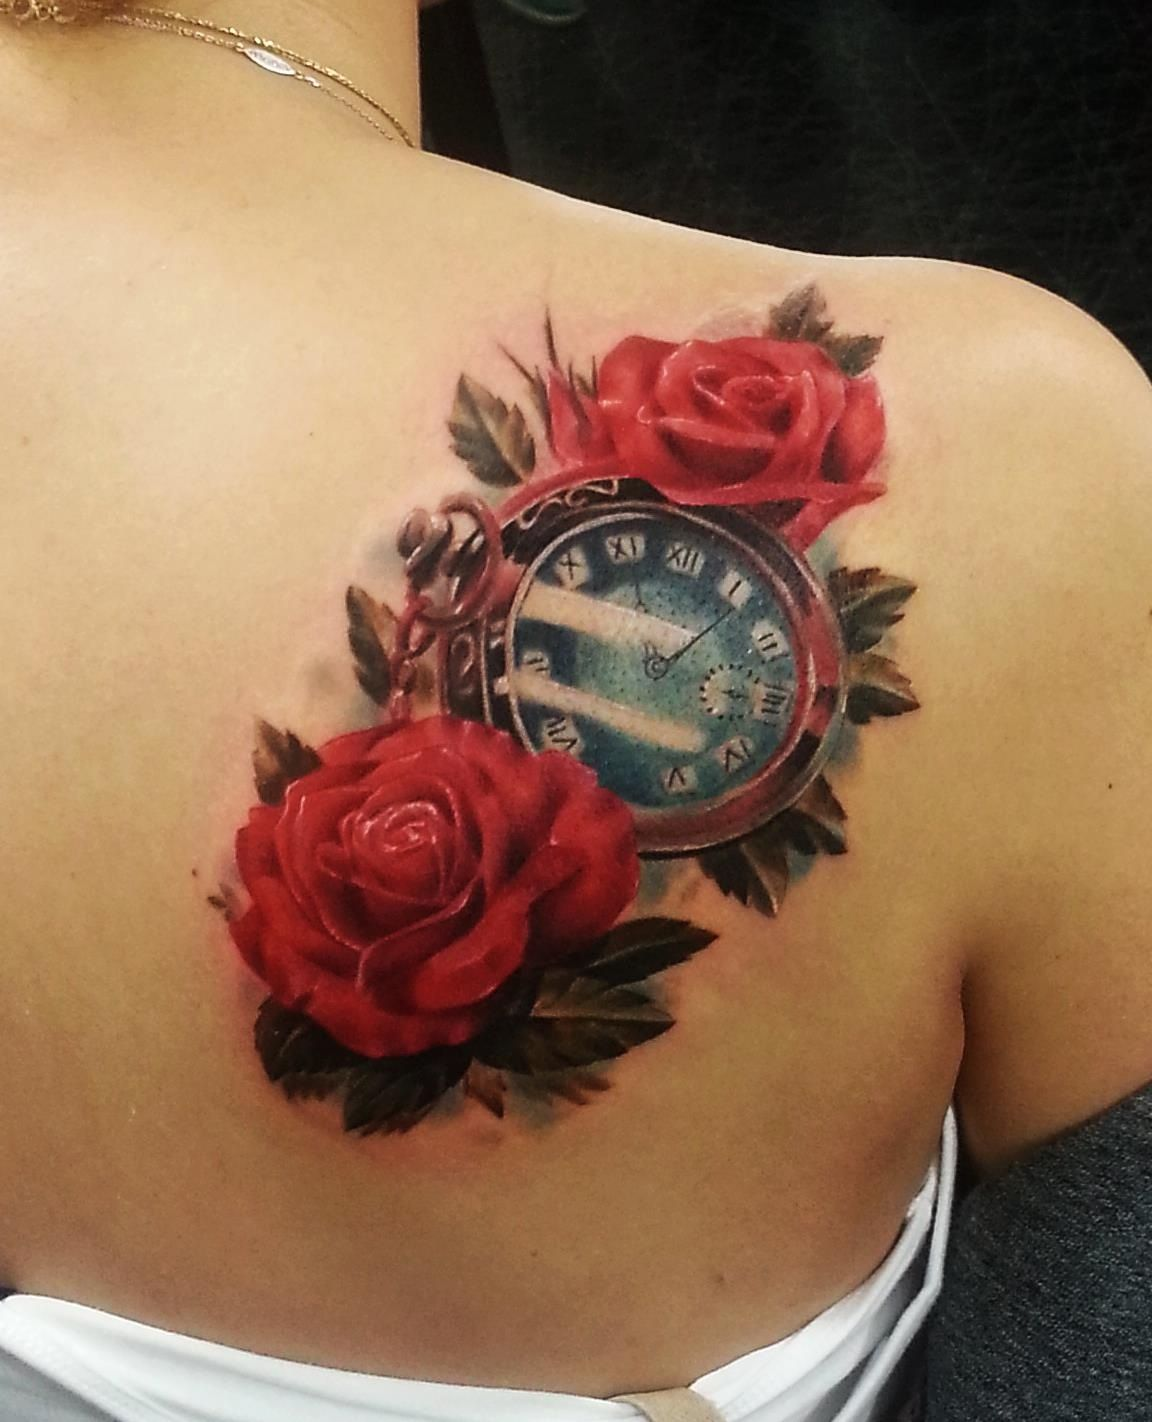 Pin By Charity Pavlesich On Tattoo Ideas Pinterest Ideas And Designs